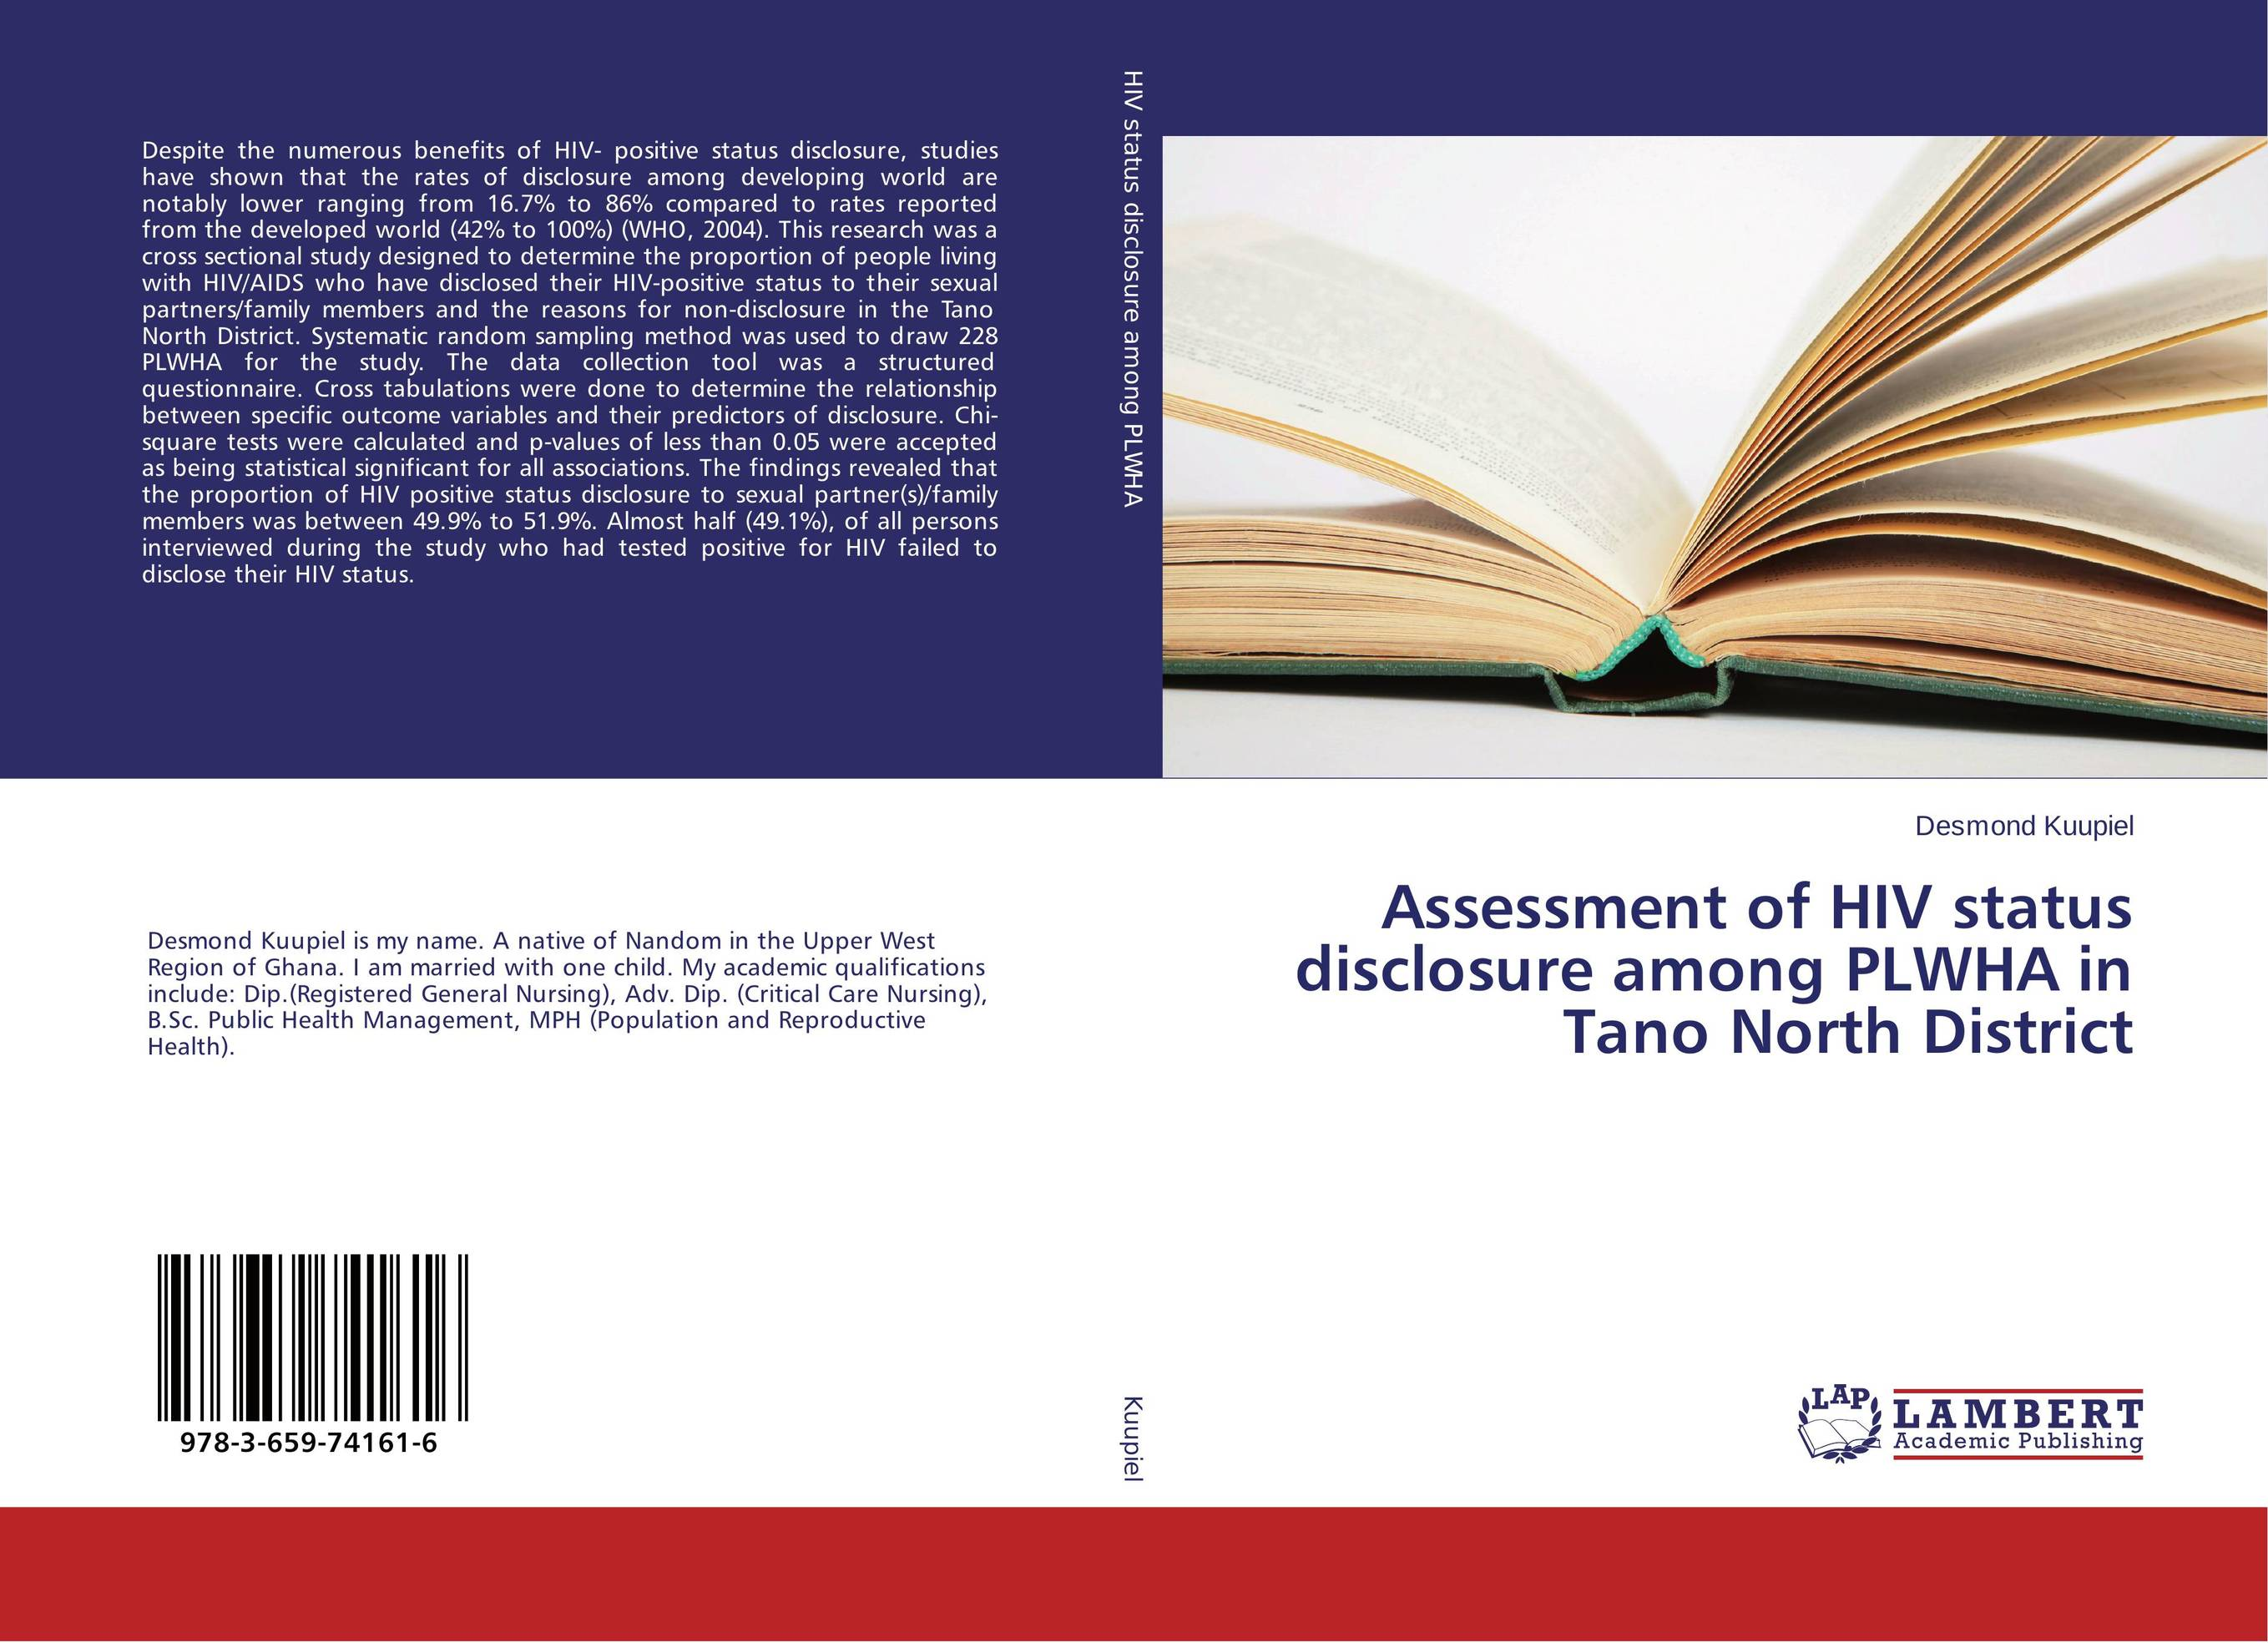 Assessment of HIV status disclosure among PLWHA in Tano North District assessment of hiv status disclosure among plwha in tano north district